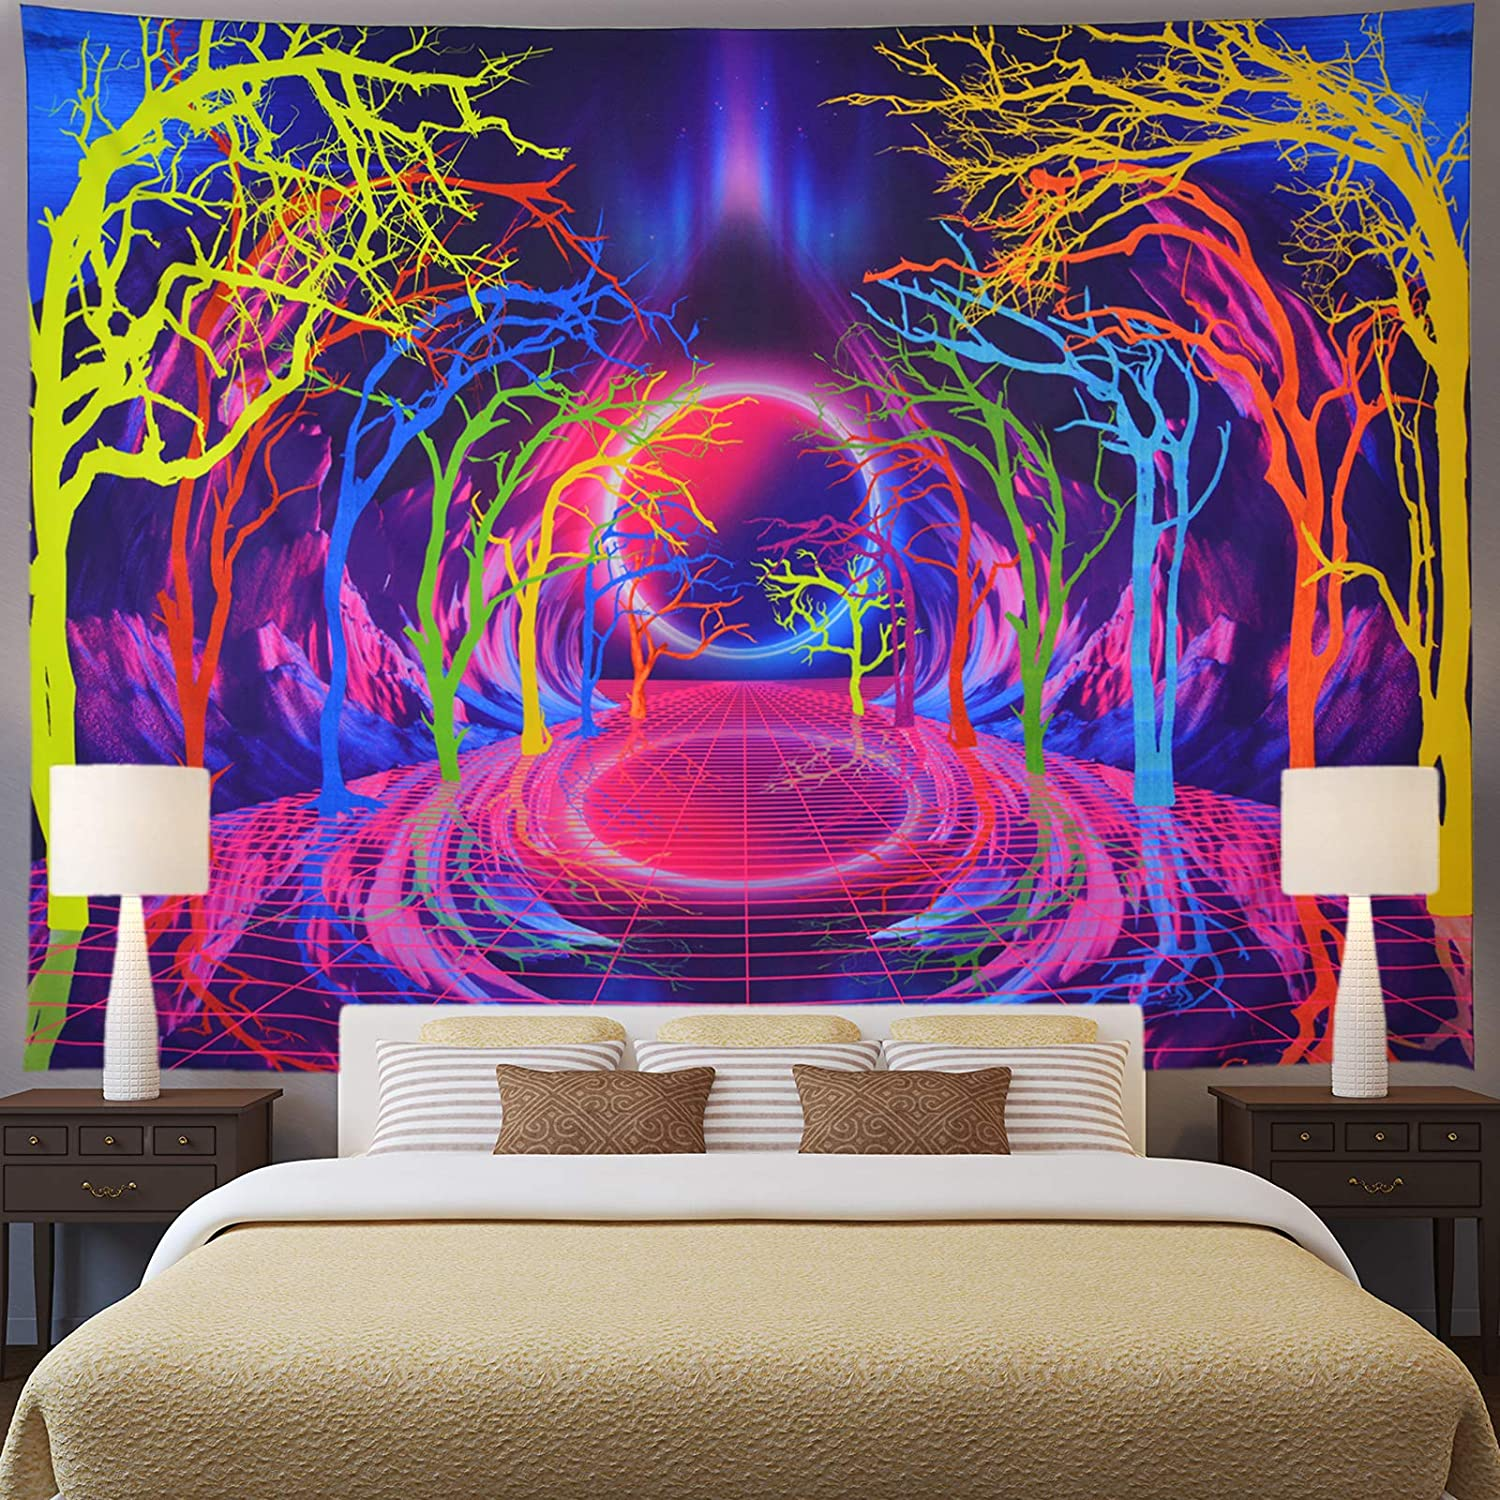 Trippy Trees Tapestry Psychedelic Sun and Mountain Tapestry Colorful Retro Wave Tapestry Abstract Hippie Neon Landscape Tapestry Wall Hanging for Living Room W59×H51